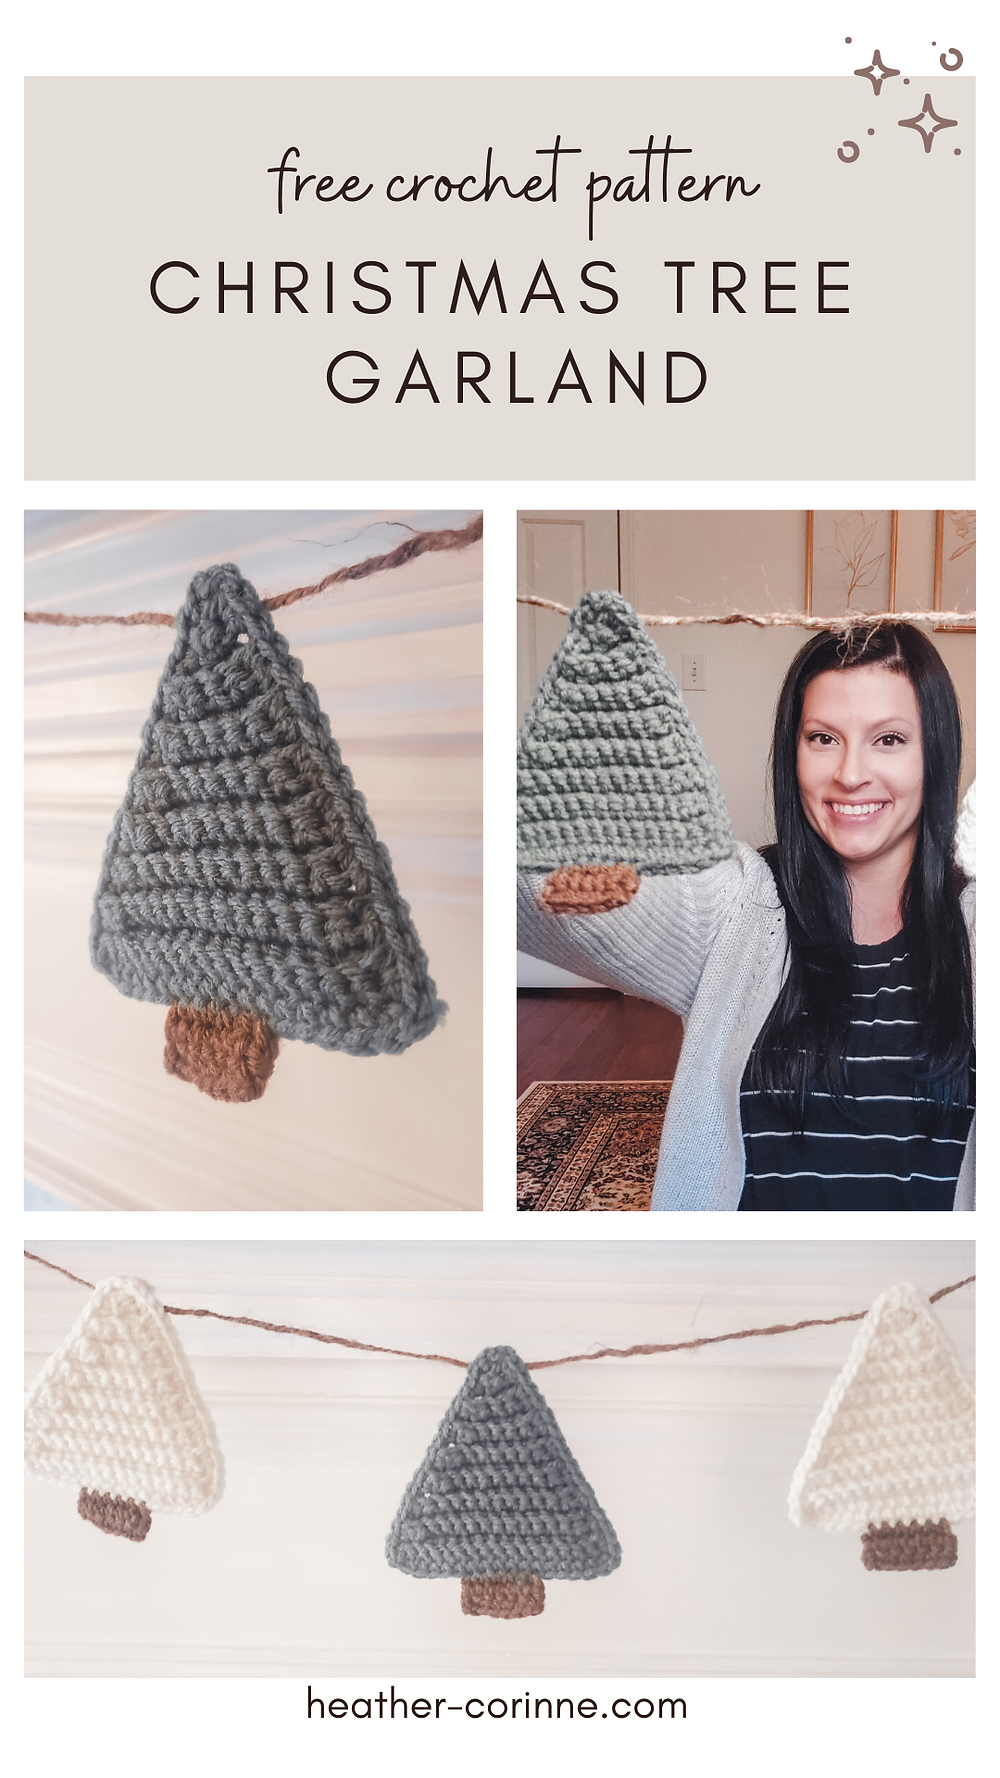 Pin this free pattern for the crochet christmas tree garland to your crochet board on Pinterest!